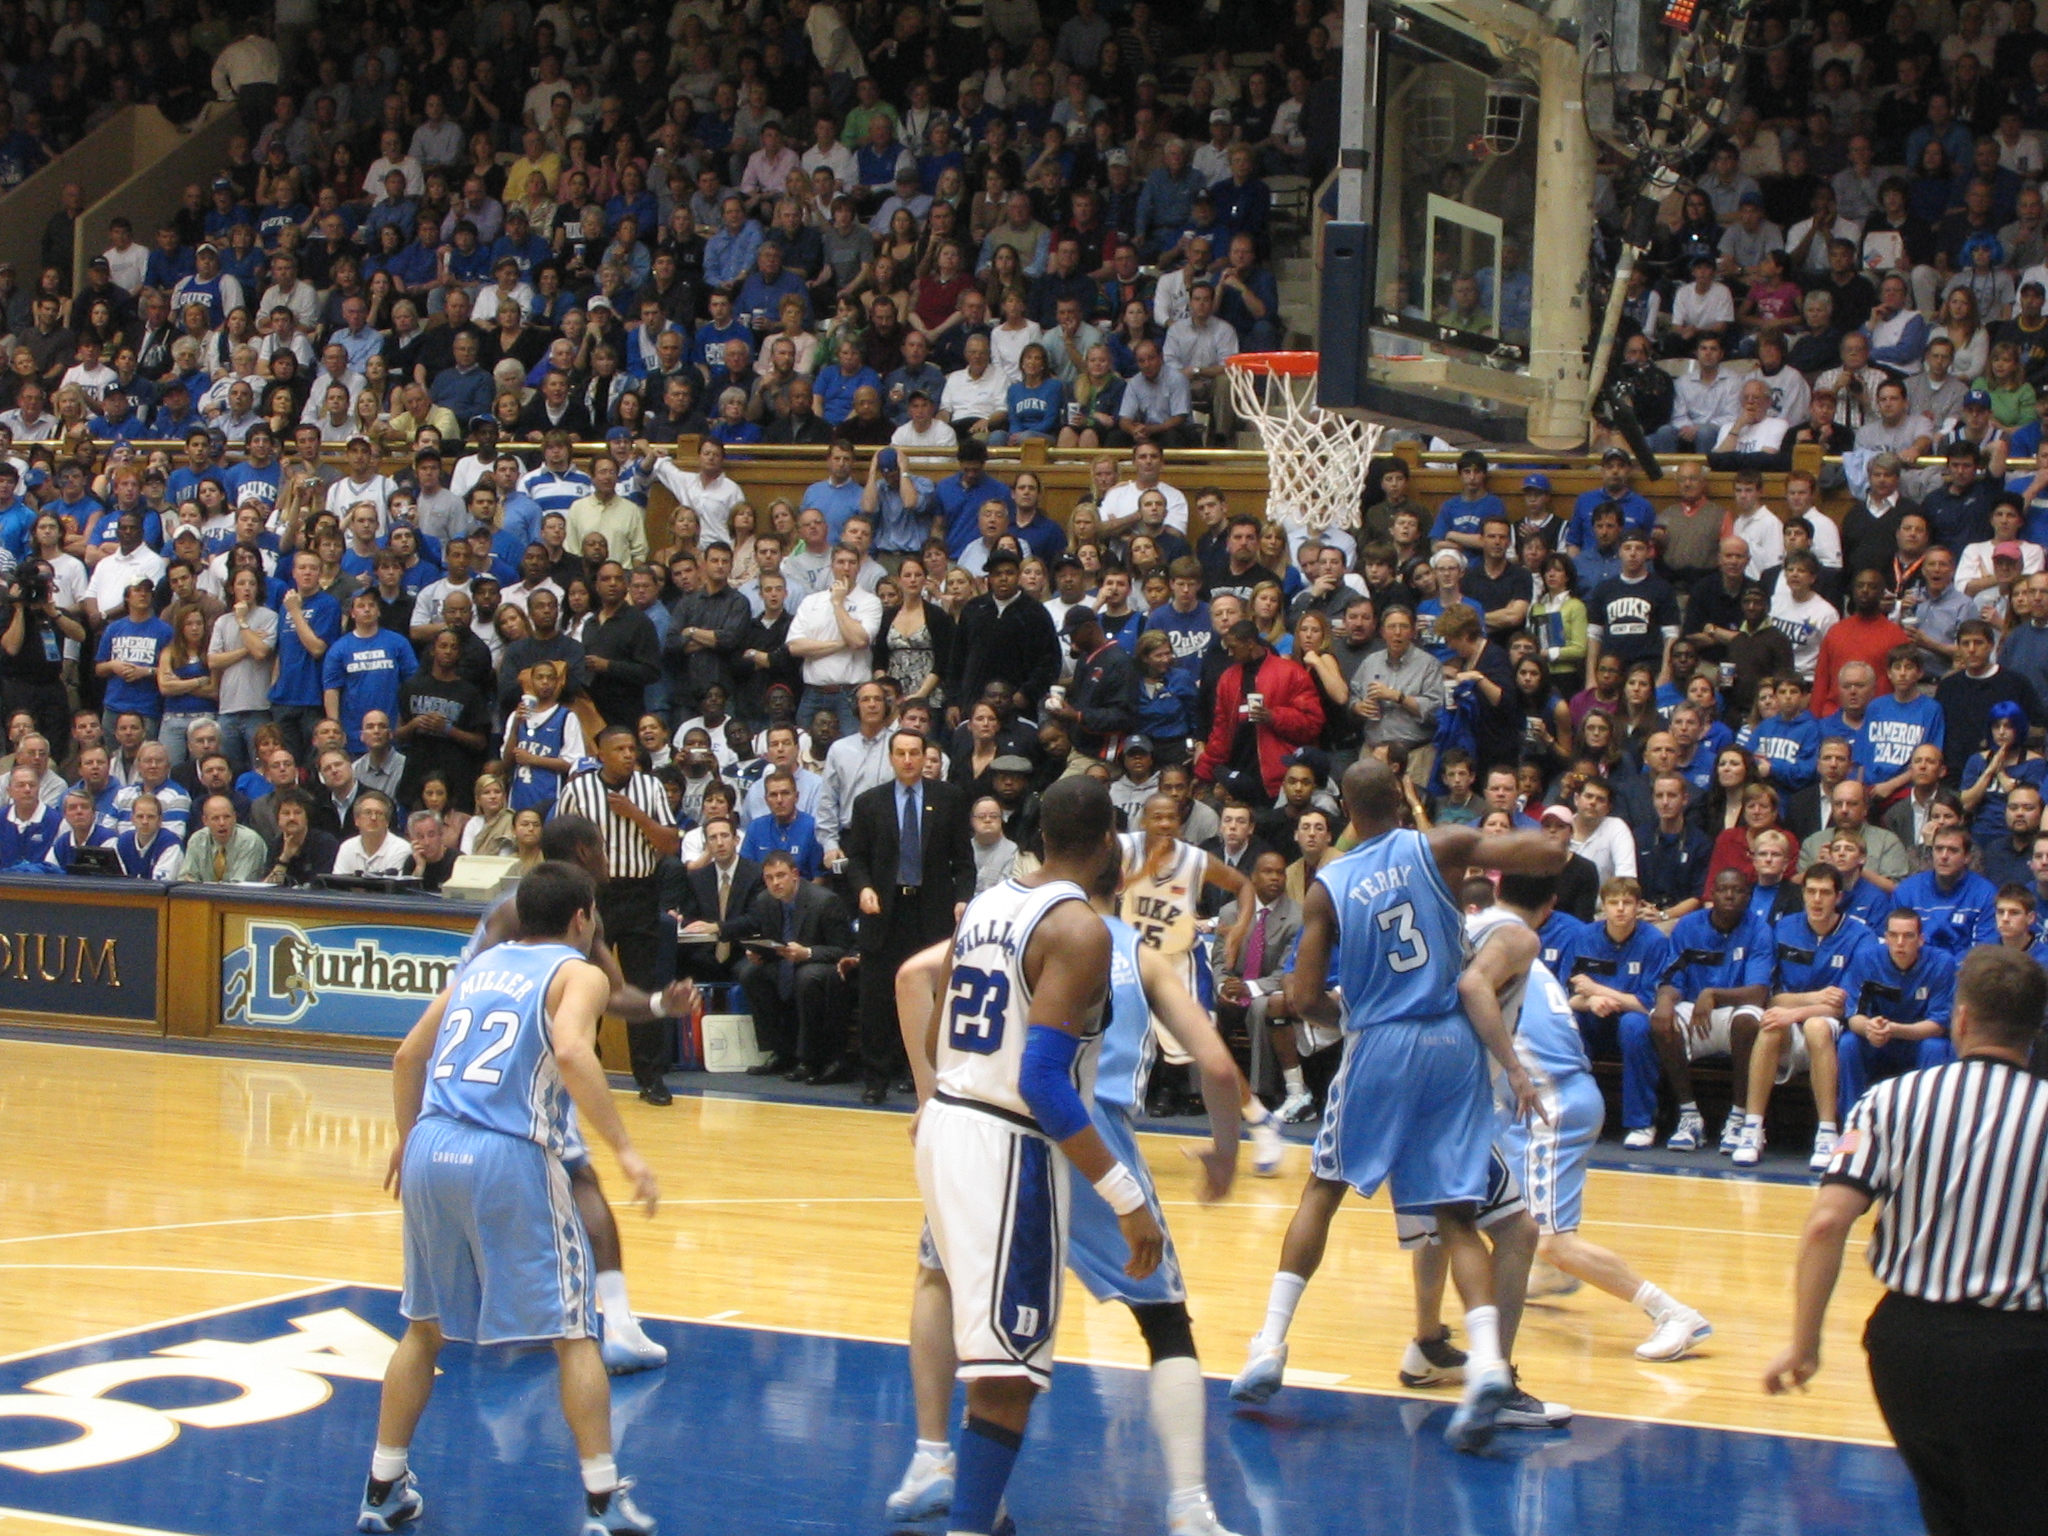 File:Carolina-Duke basketball 2006 1.jpg - Wikimedia Commons